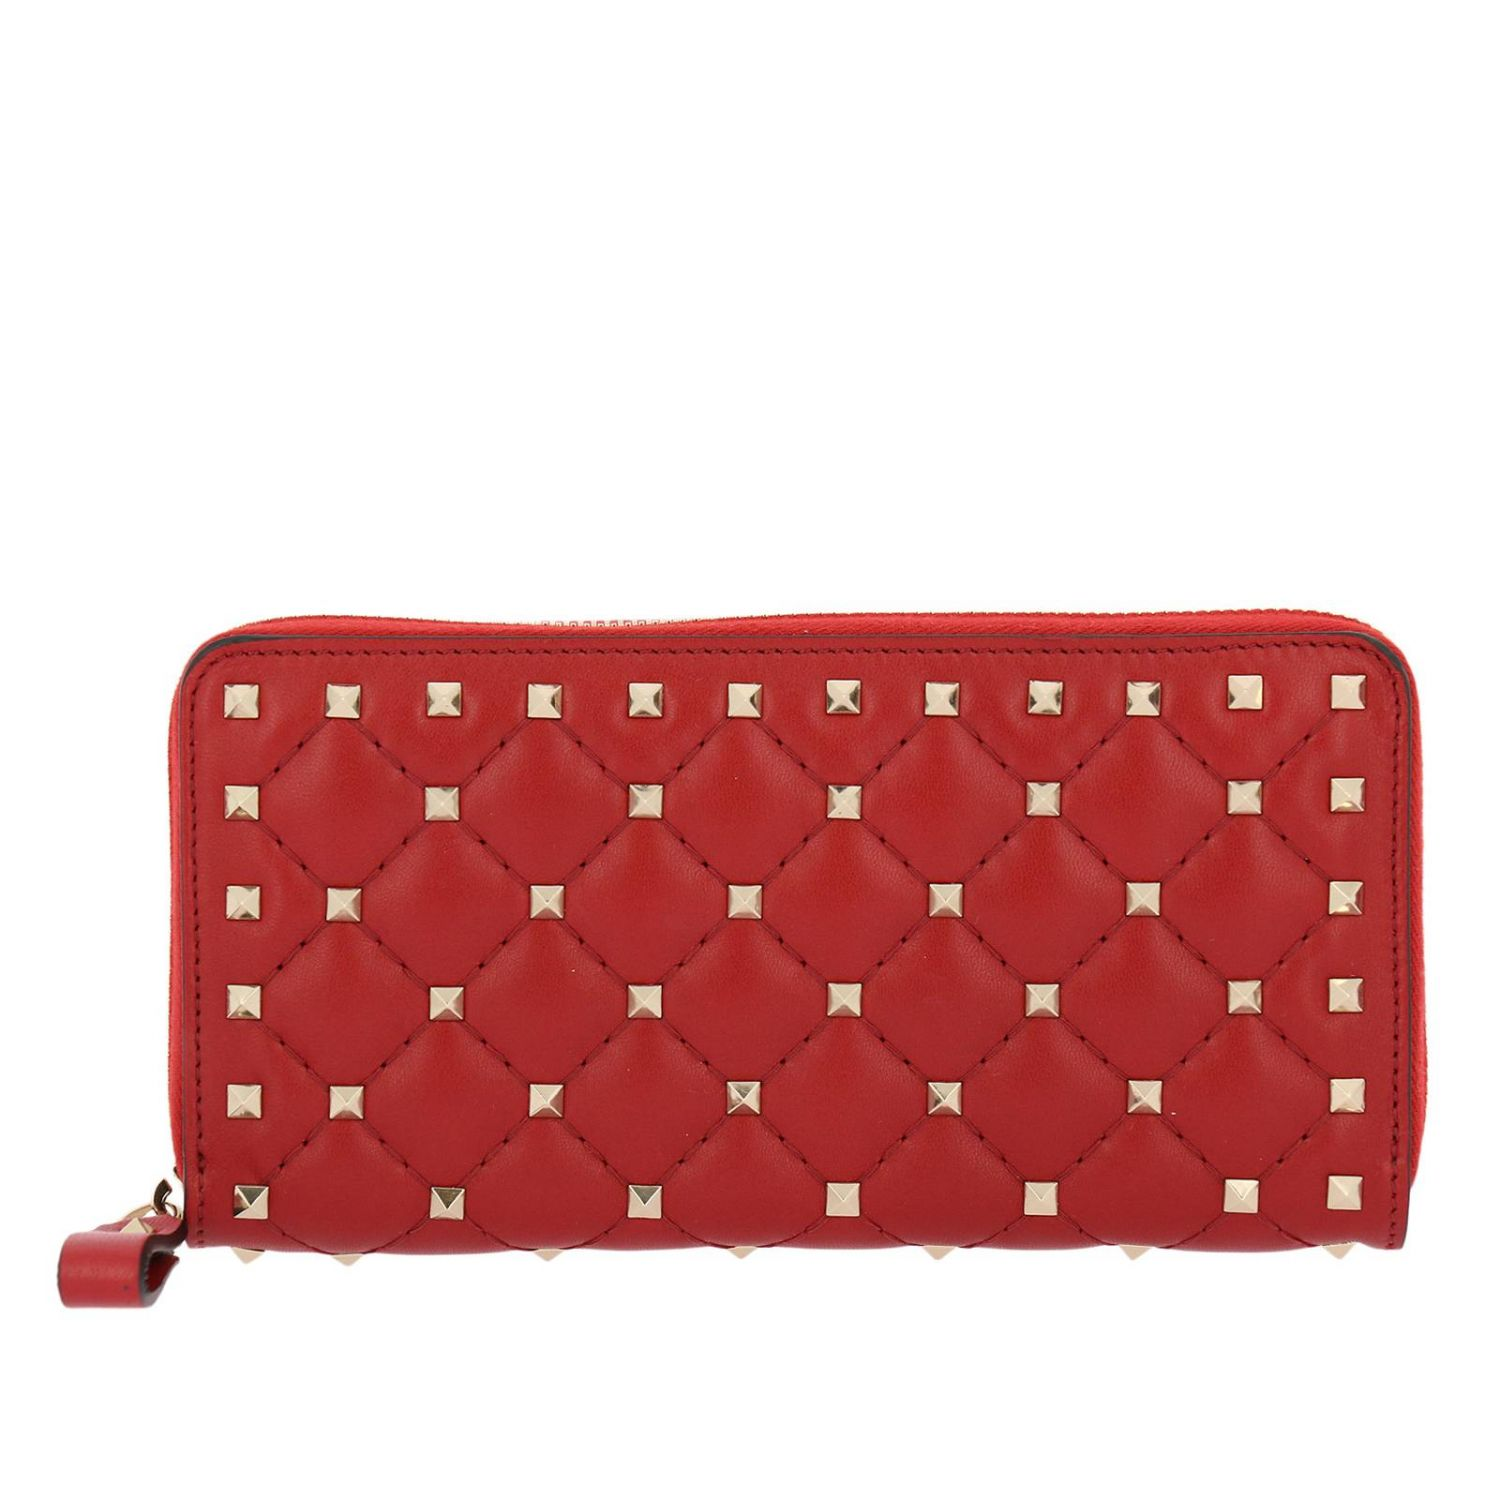 Wallet Valentino Rockstud Spike Zip Around Wallet In Quilted Leather With Metal Studs 8286842